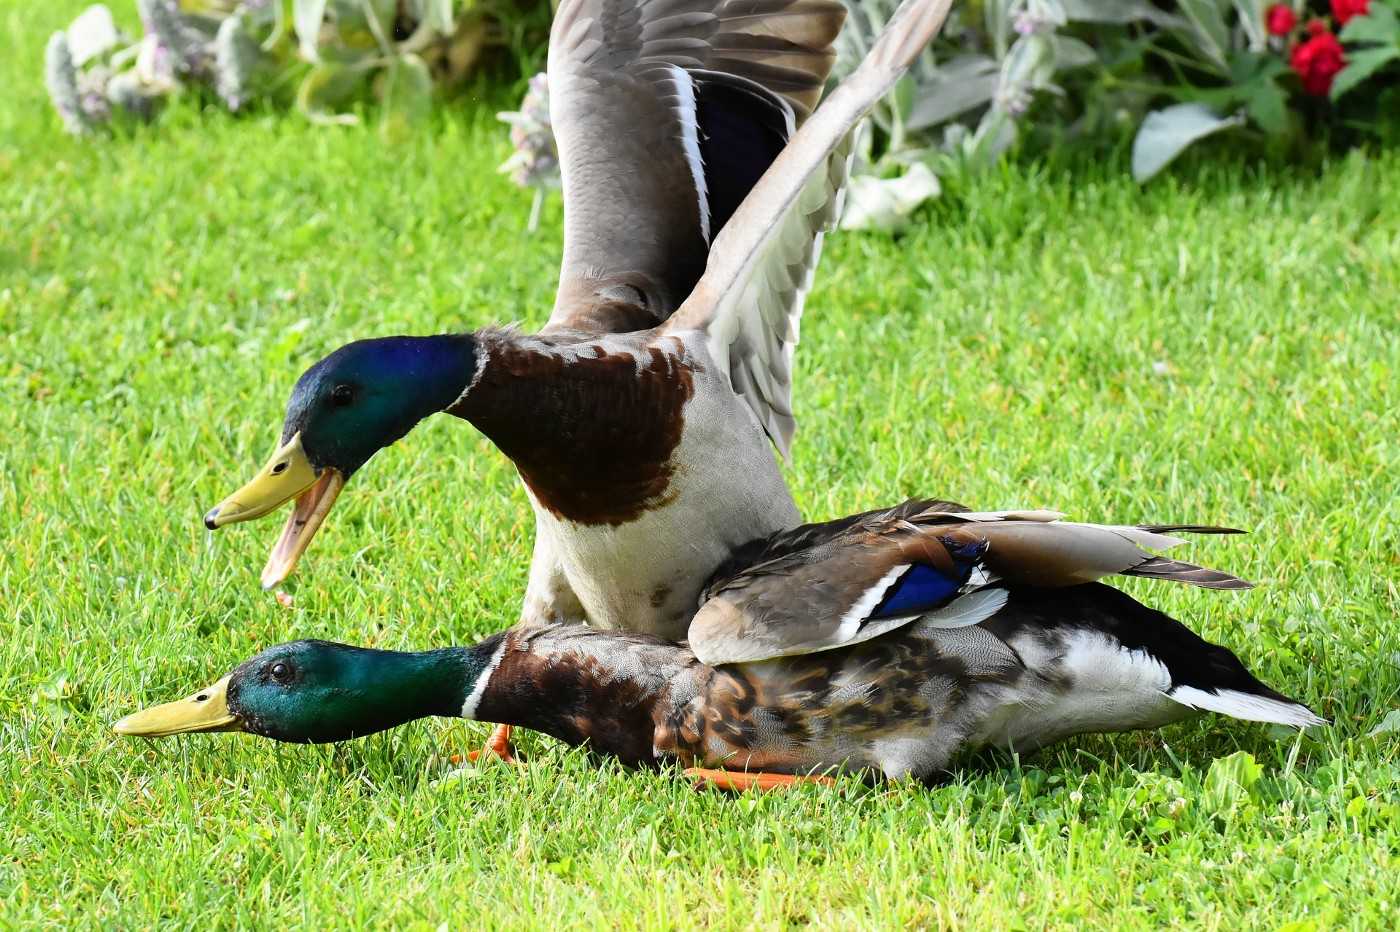 Manipulative duck not taking responsibility for his behavior toward his friend